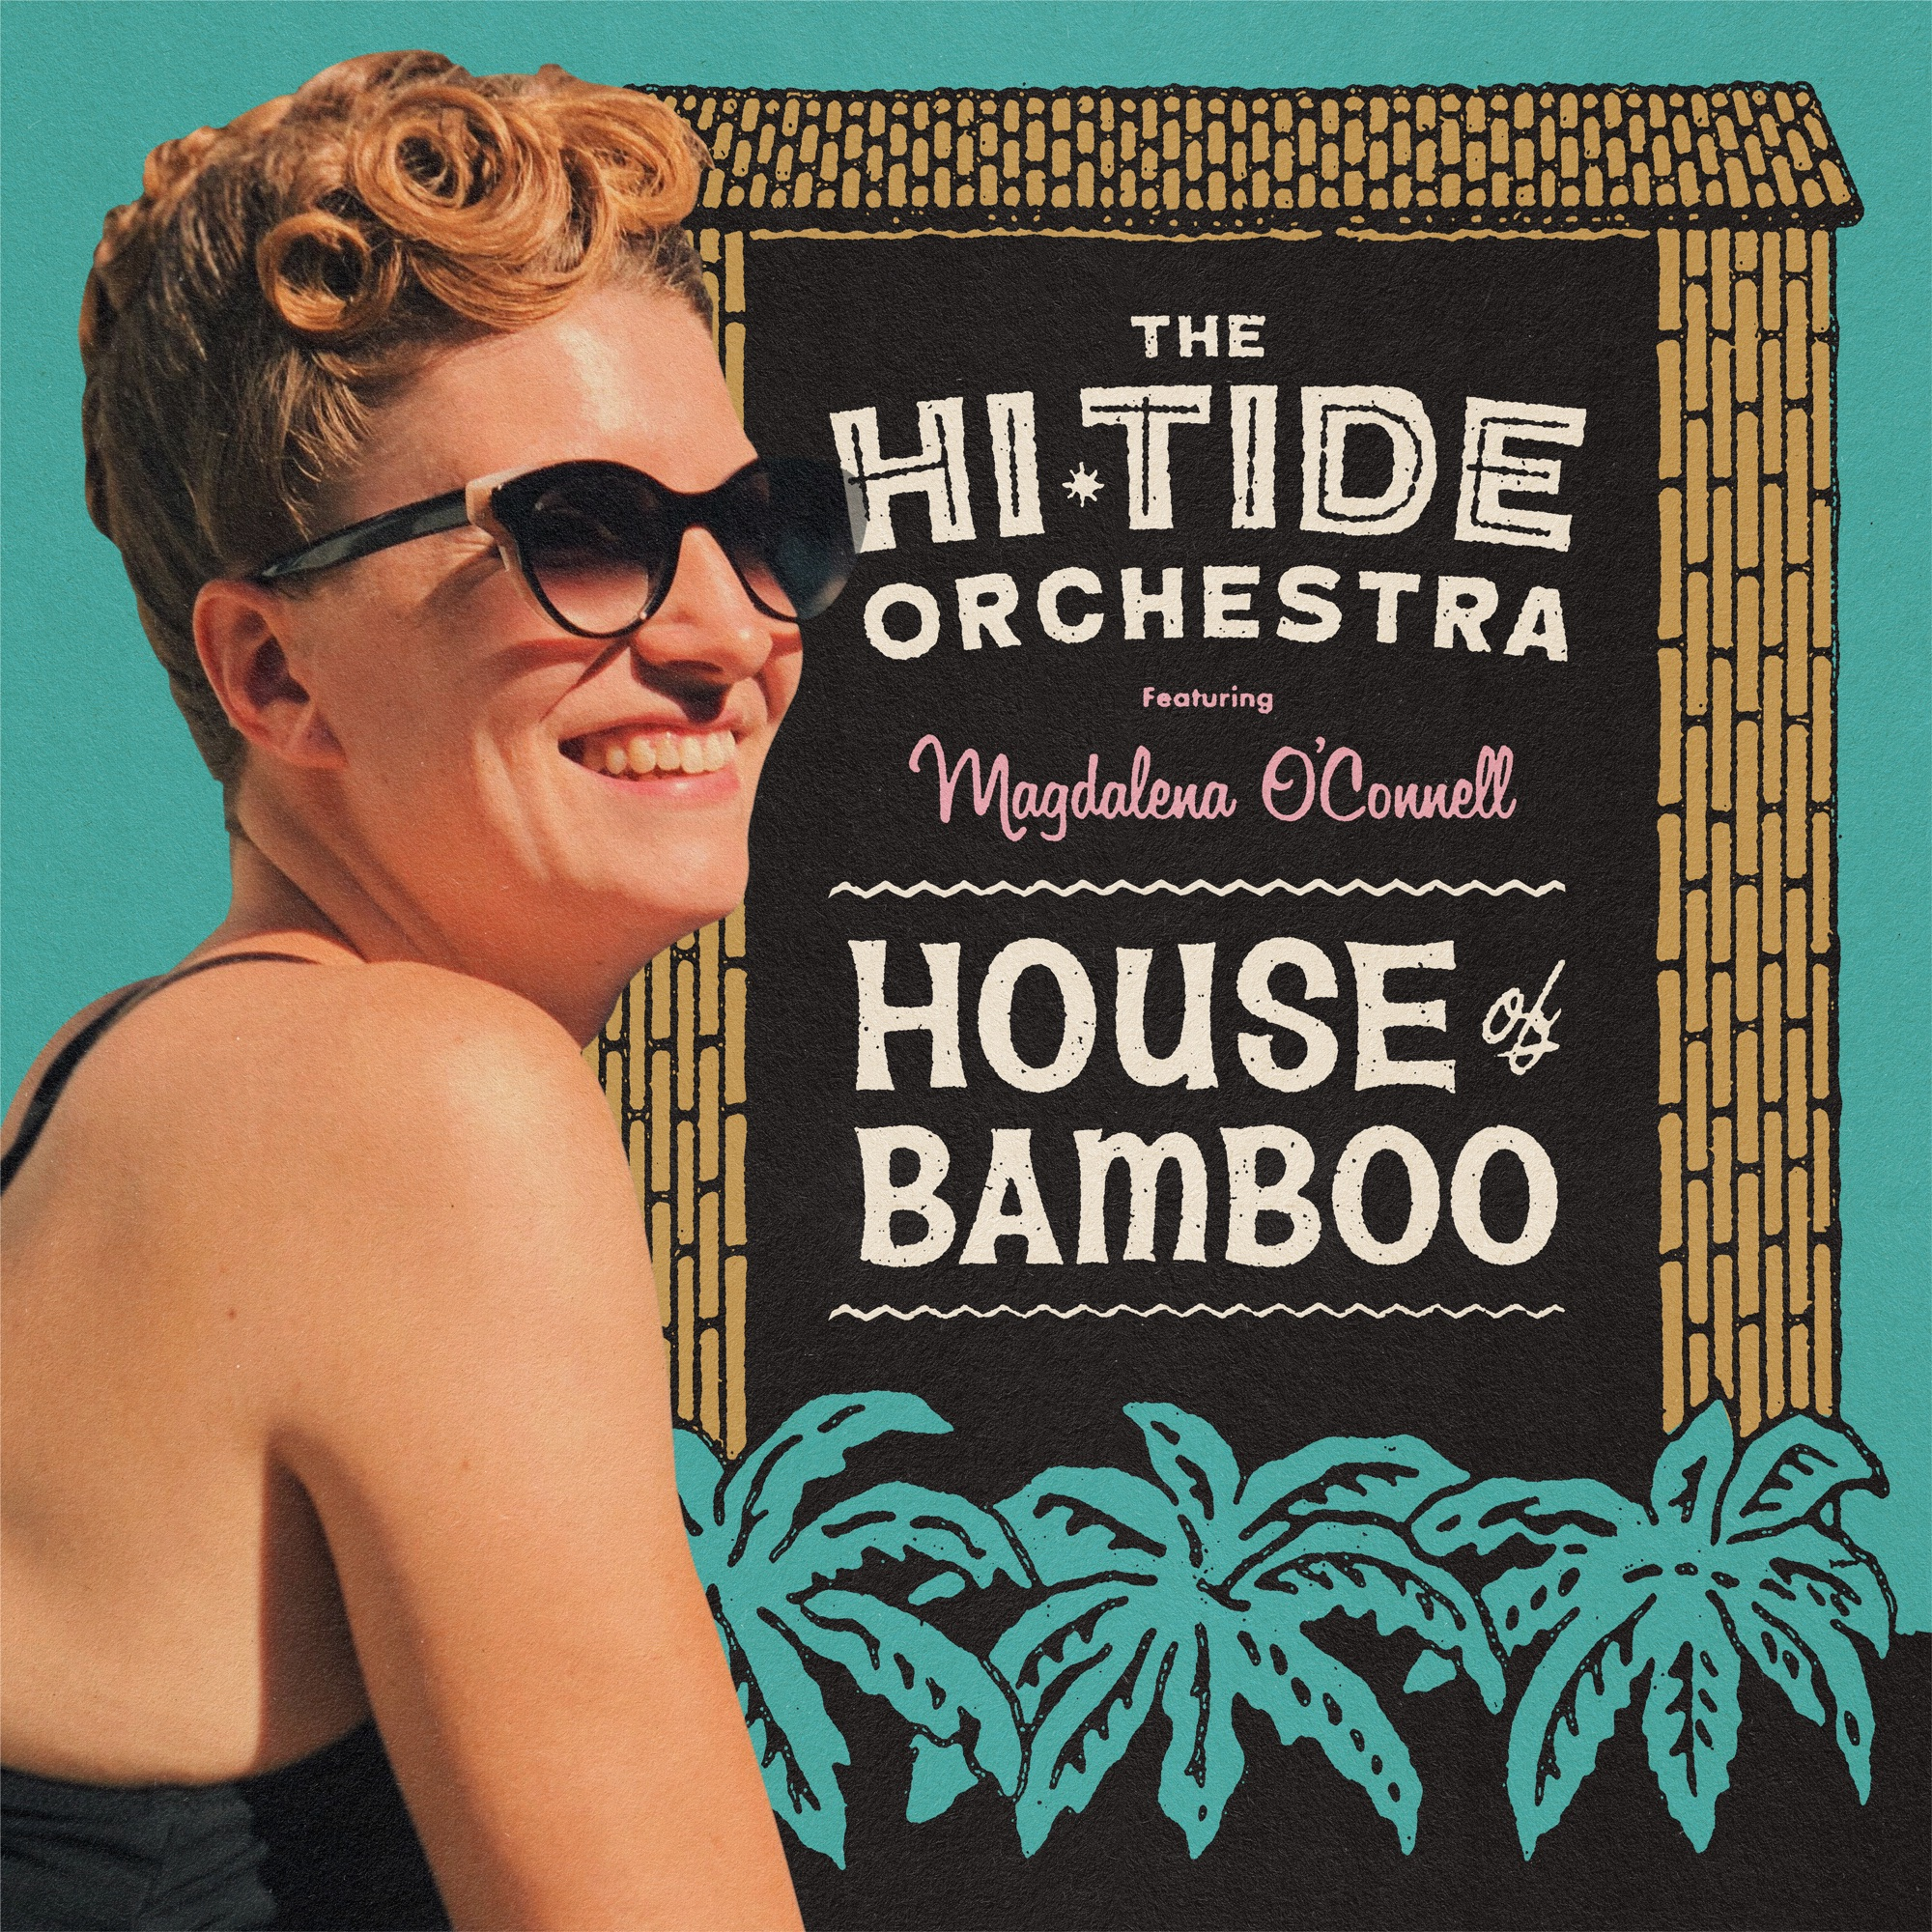 Art for House of Bamboo (feat. Magdalena O'Connell) by The Hi-Tide Orchestra